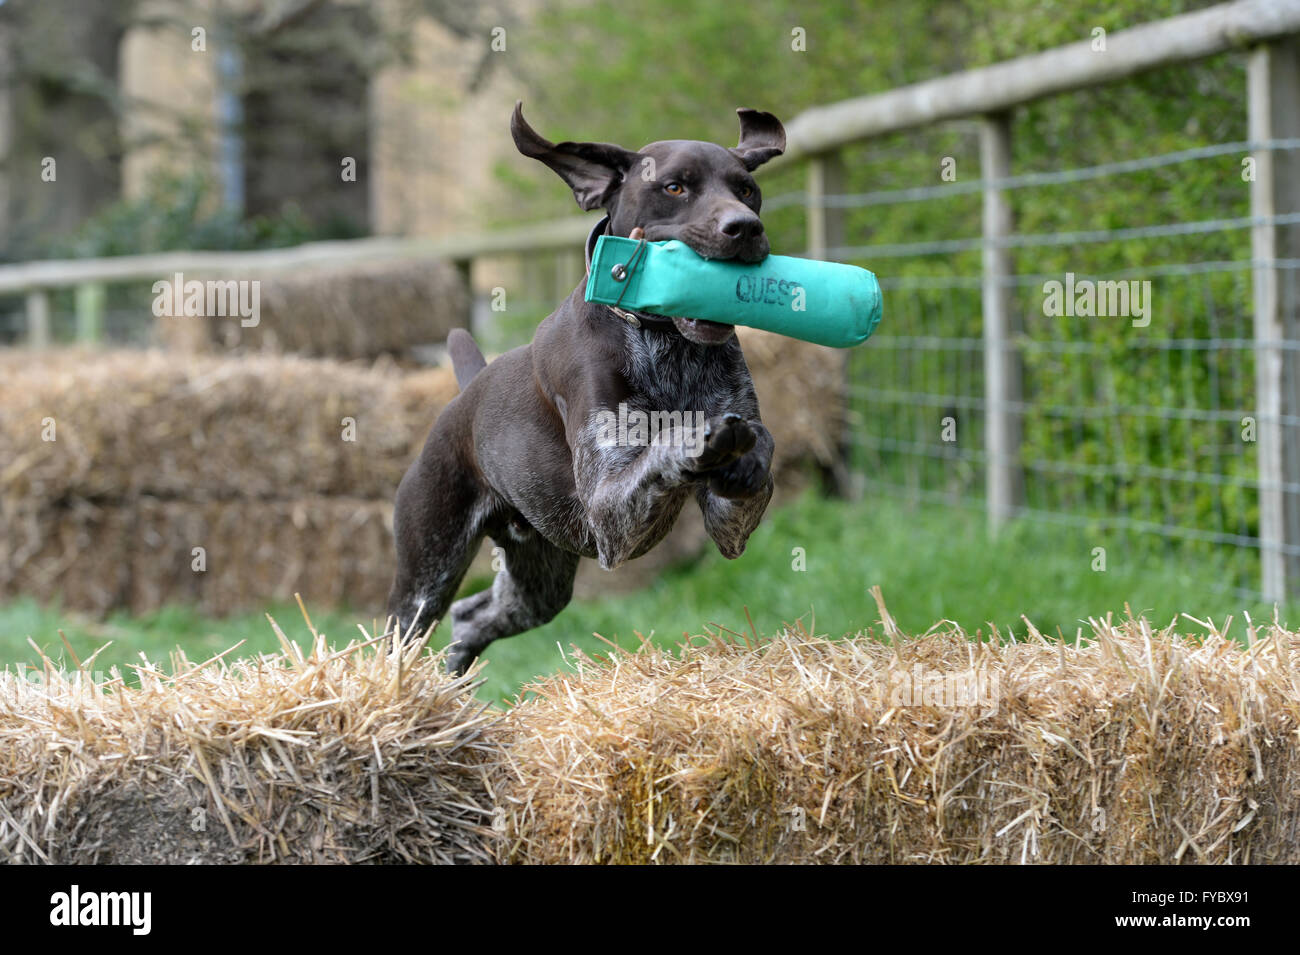 Pointer Dog jumping over straw bales having retrieved a green dummy in mouth  Scurry event  Ears flying - Stock Image